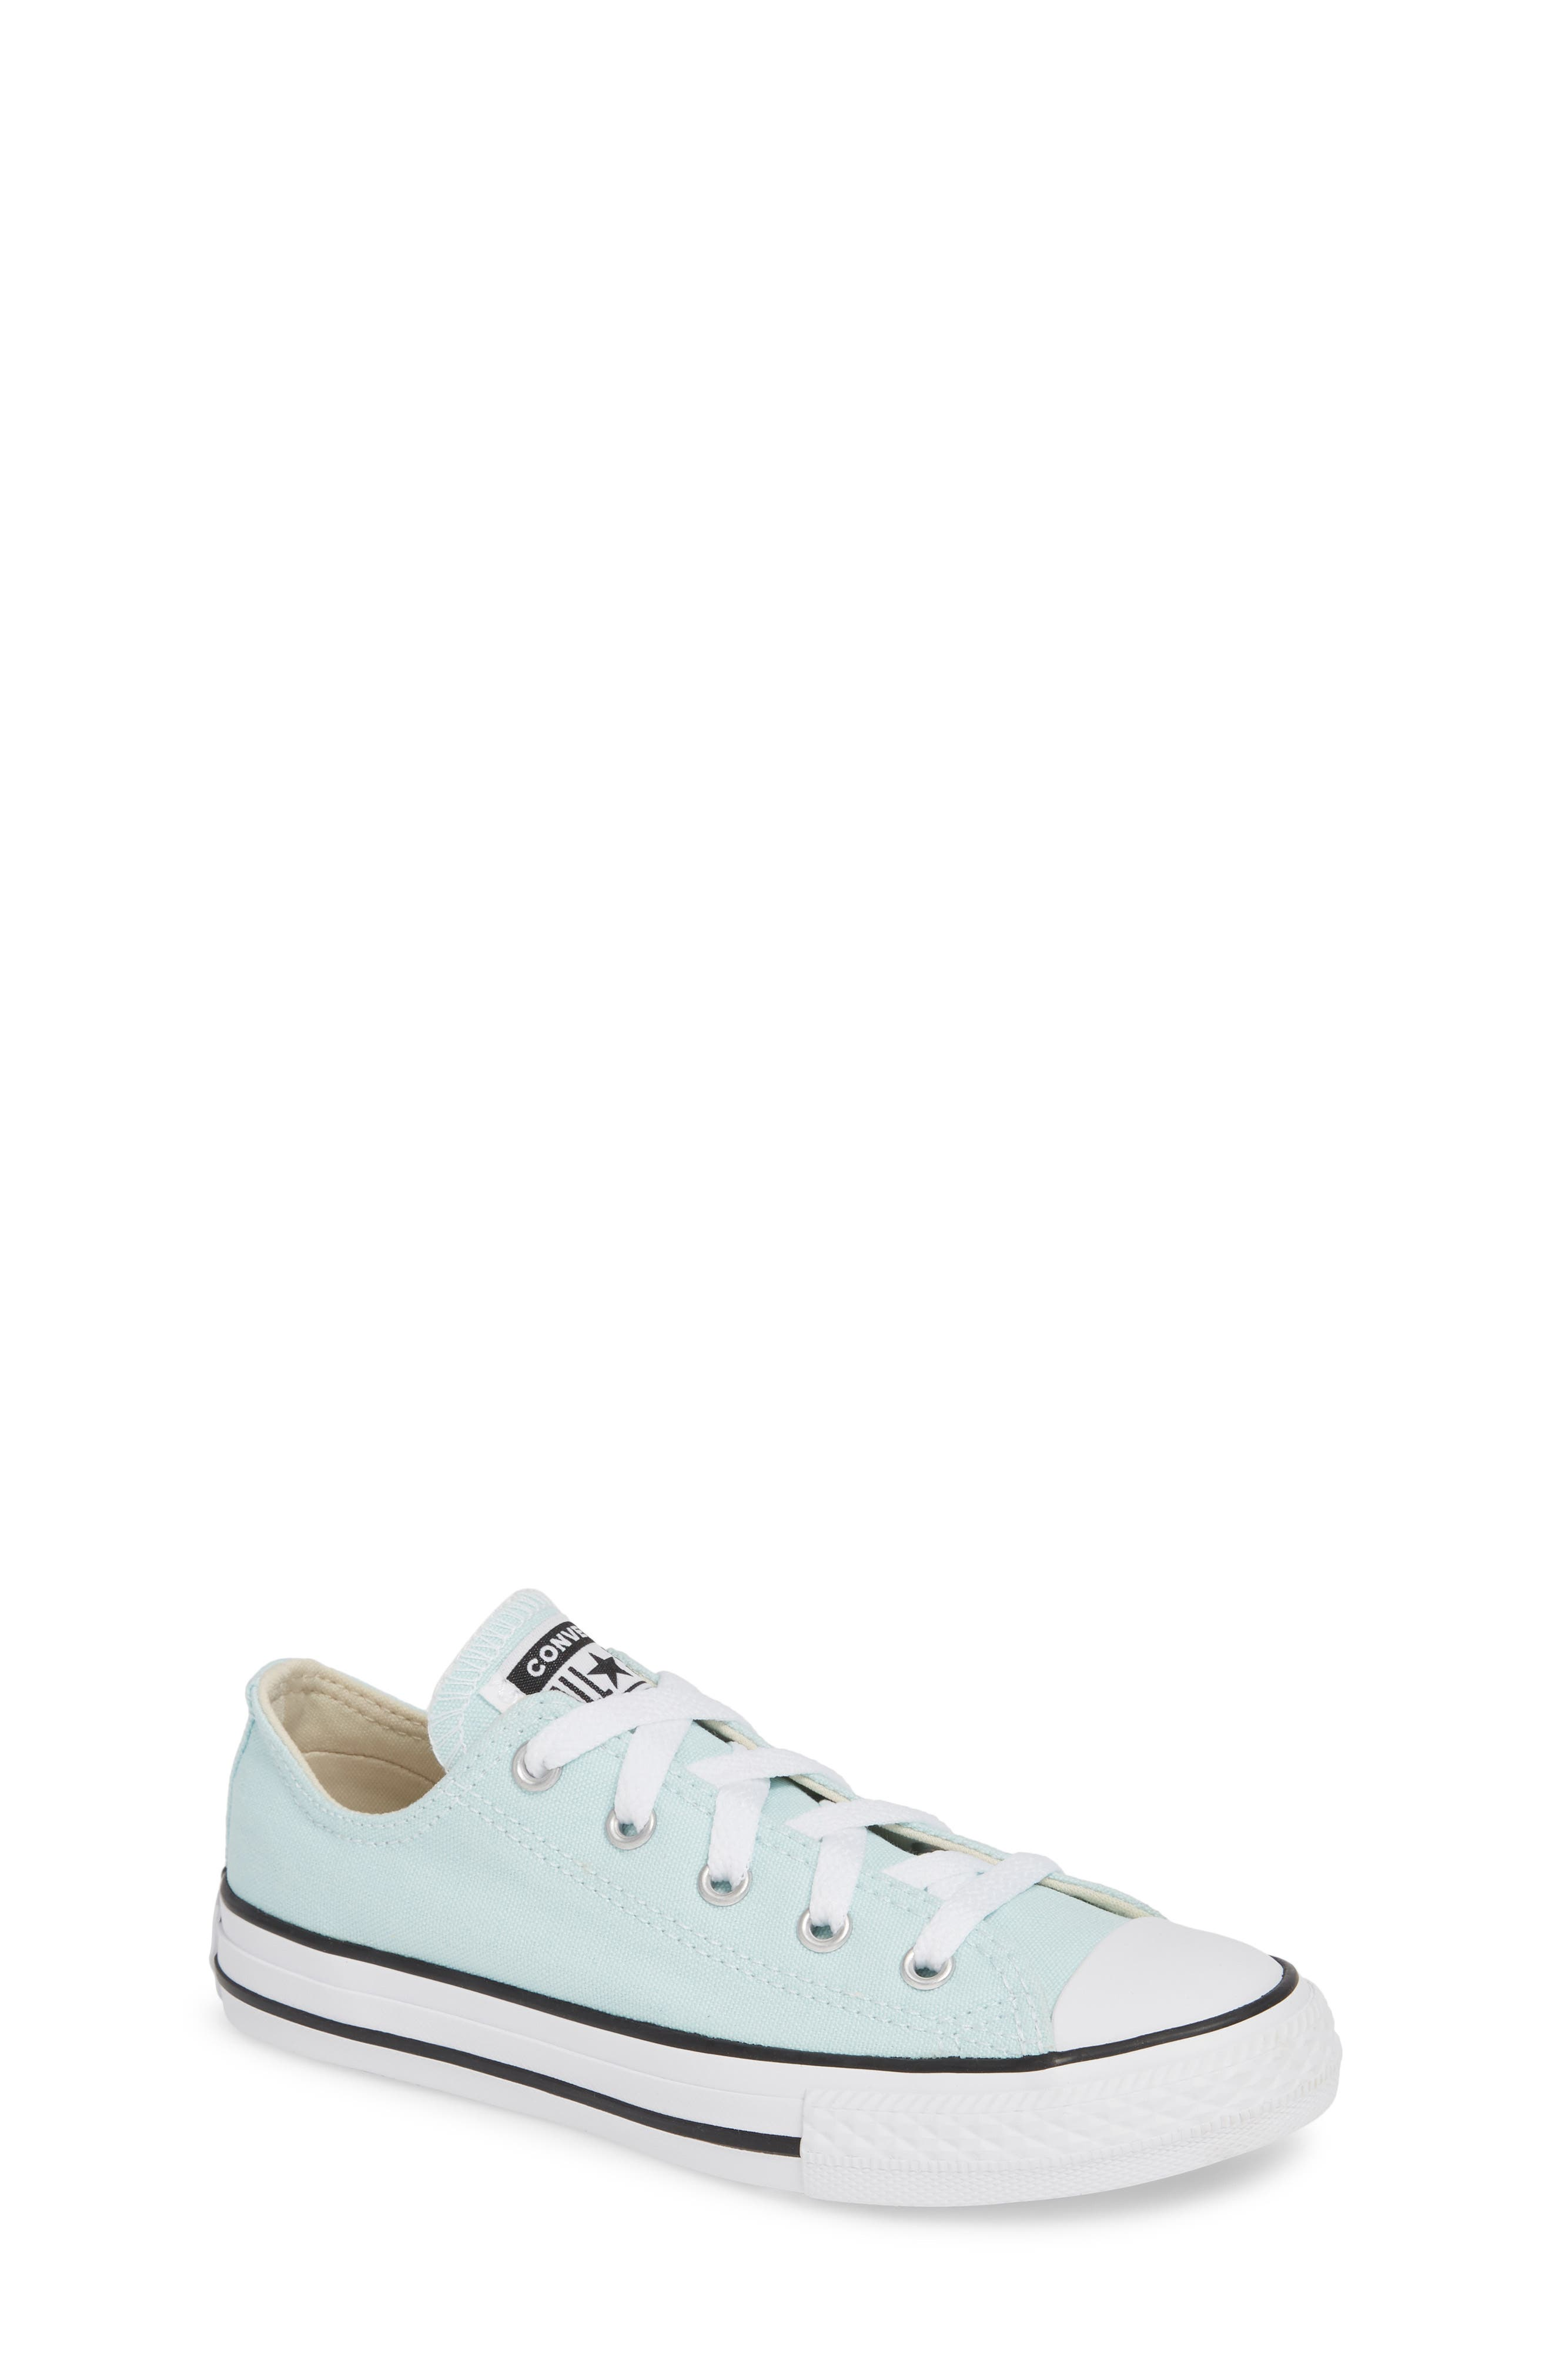 CONVERSE, Chuck Taylor<sup>®</sup> Sneaker, Main thumbnail 1, color, TEAL TINT/ IVORY/ WHITE